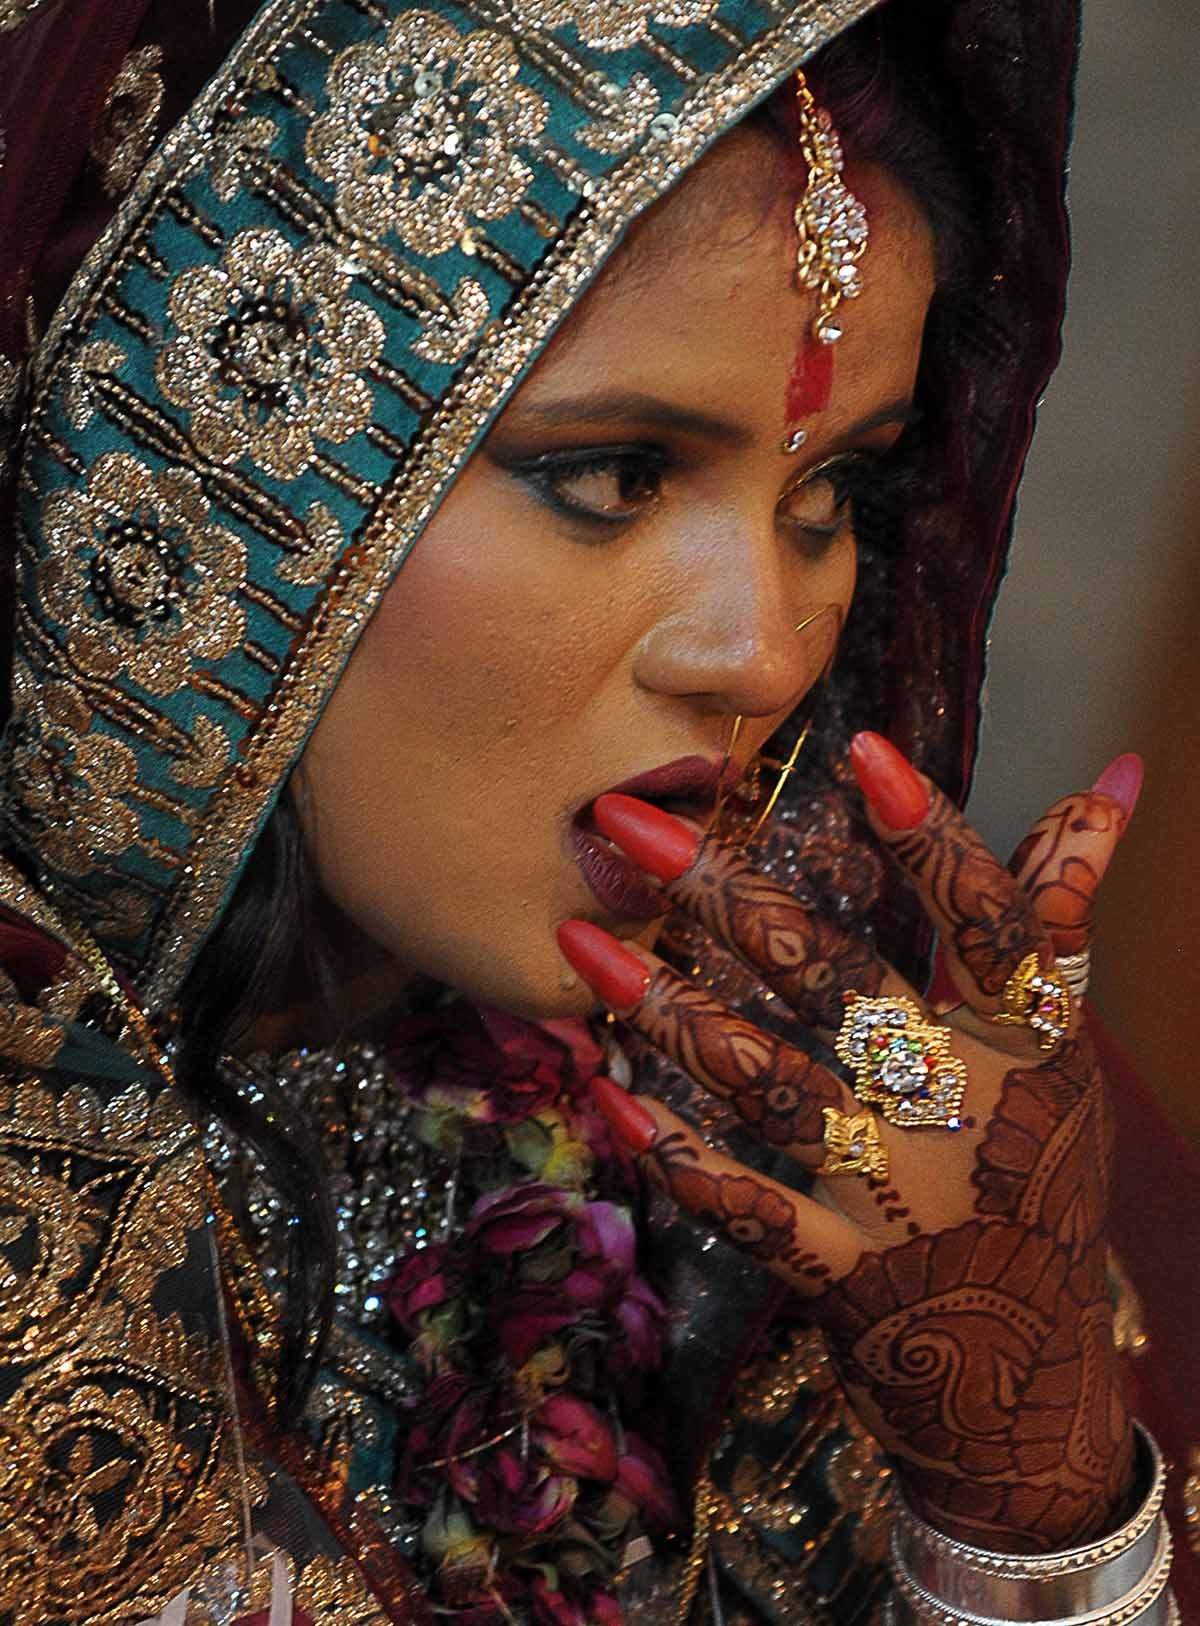 A Pakistani Hindu bride participates in a mass marriage ceremony in Karachi on November 30, 2013.